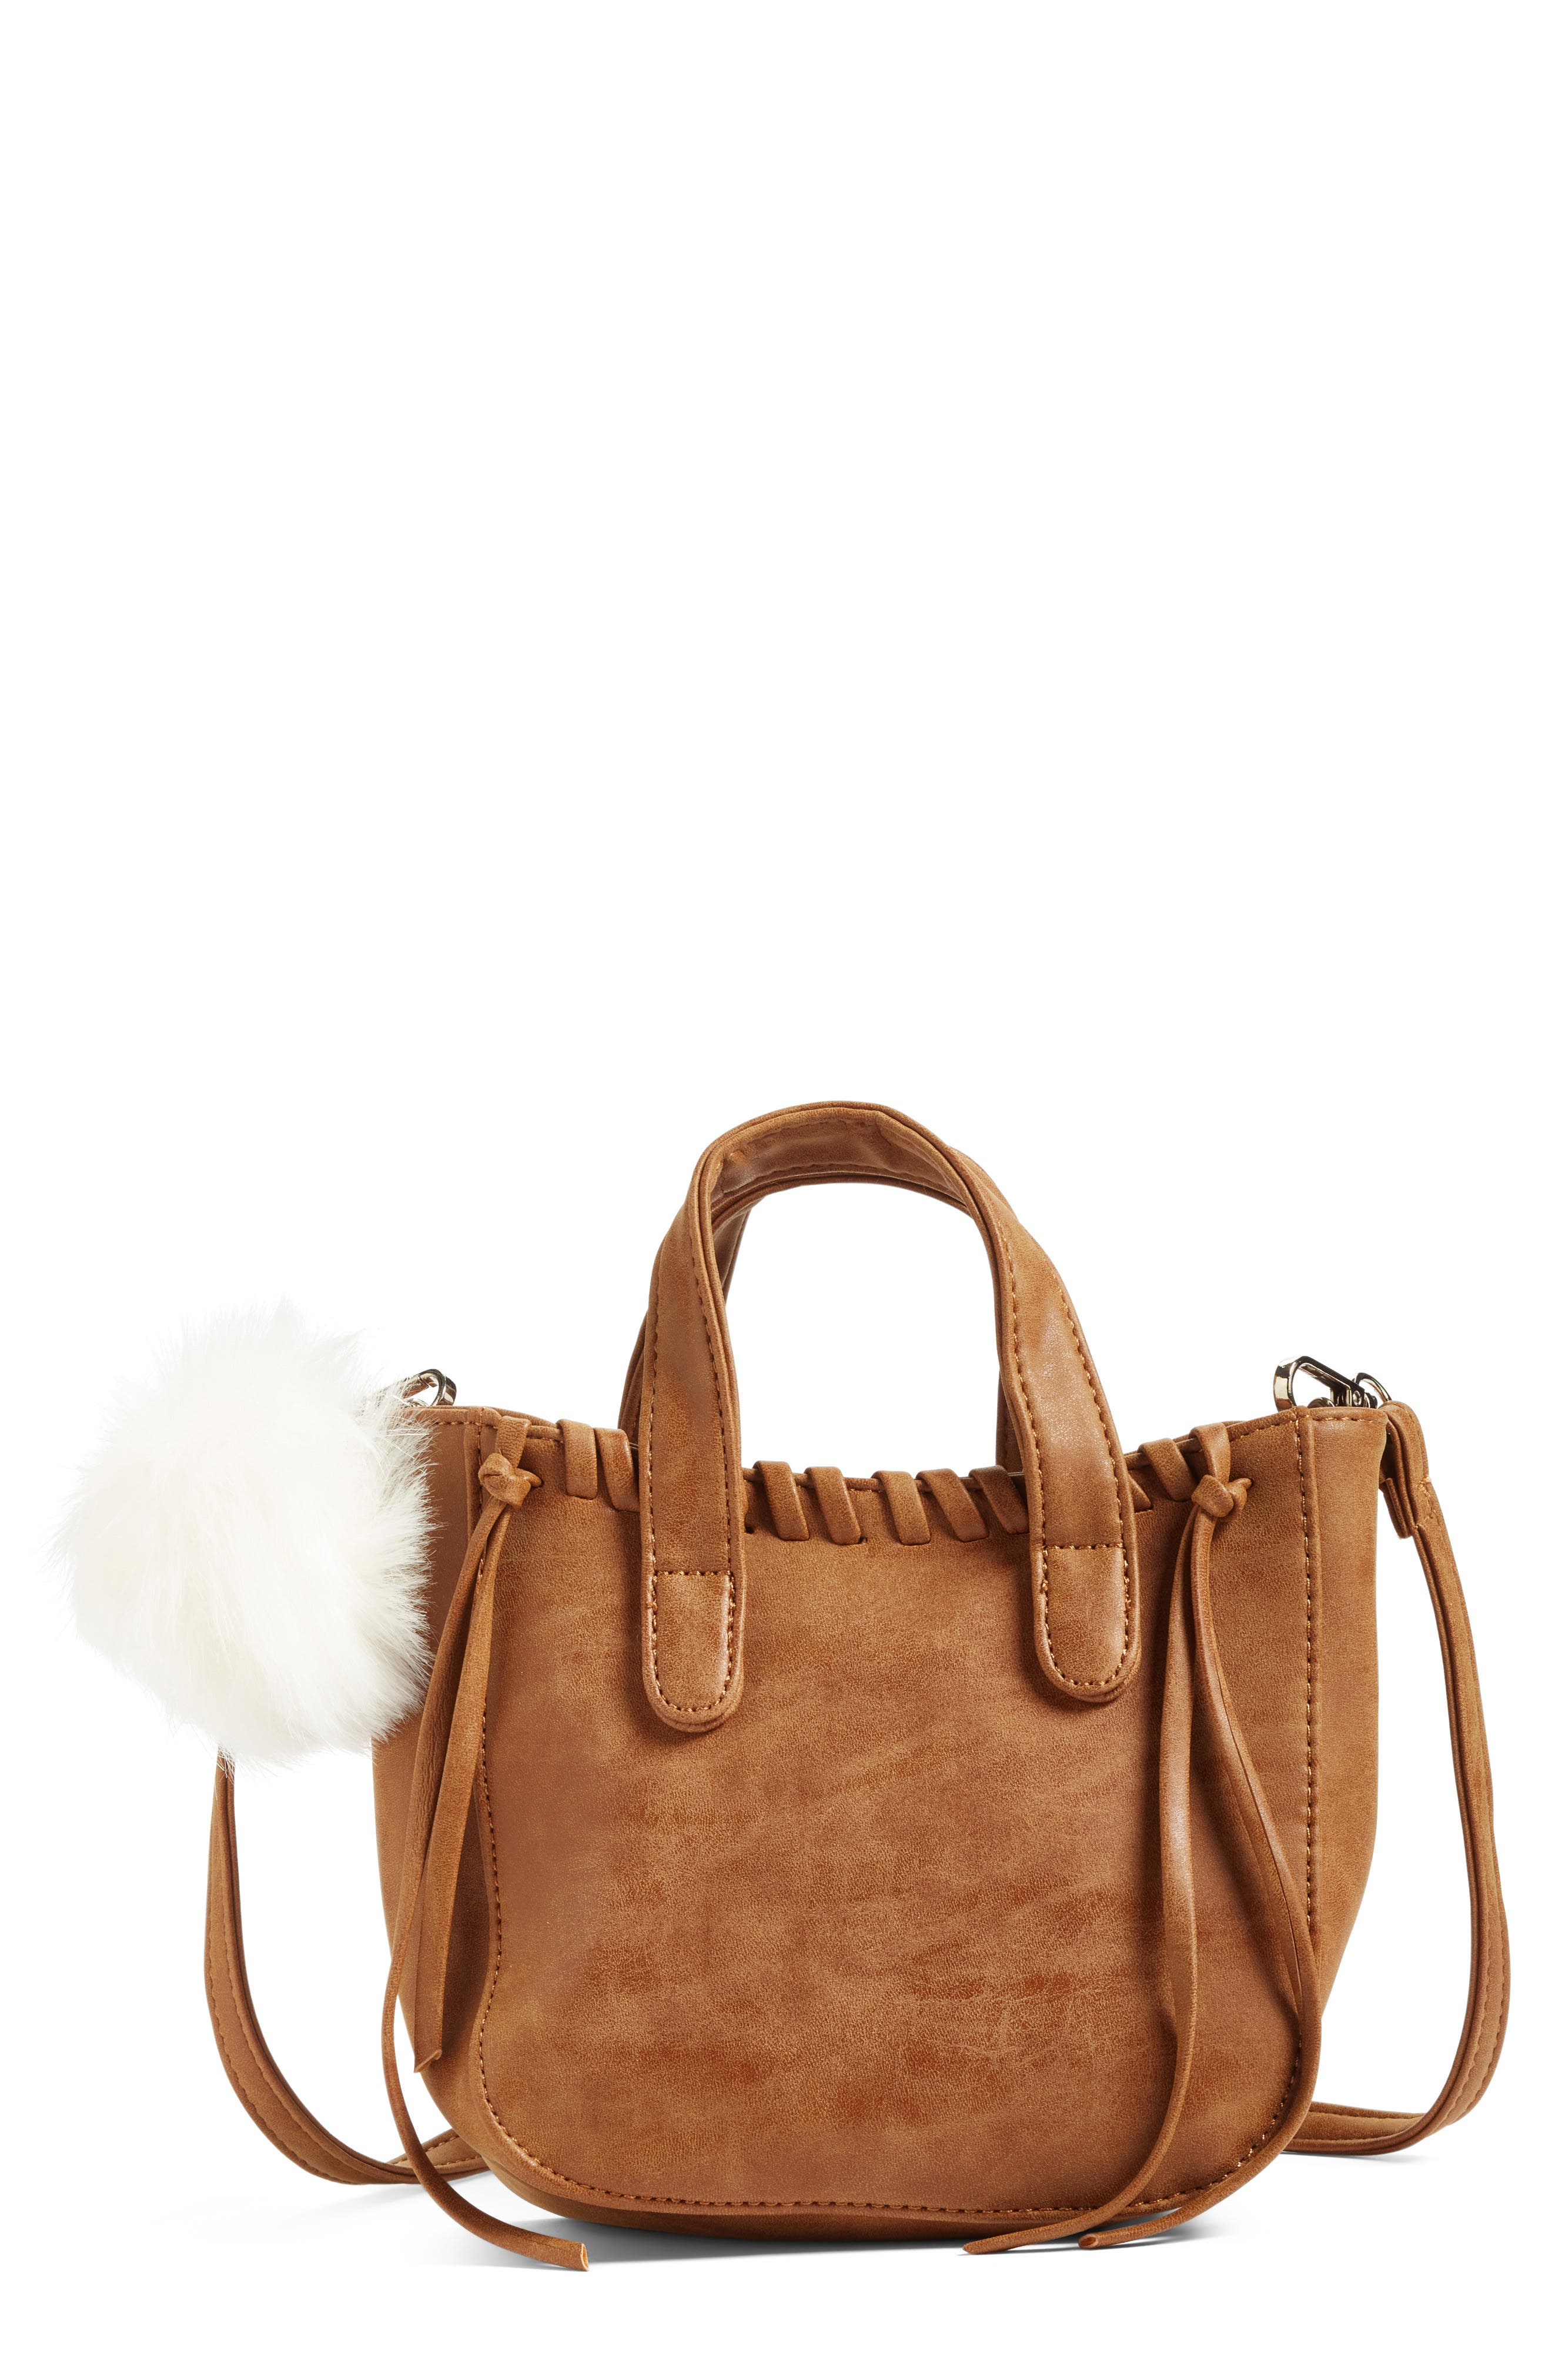 Alternate Image 1 Selected - OMG Faux Leather Shoulder Bag with Faux Fur Bag Charm (Special Purchase)